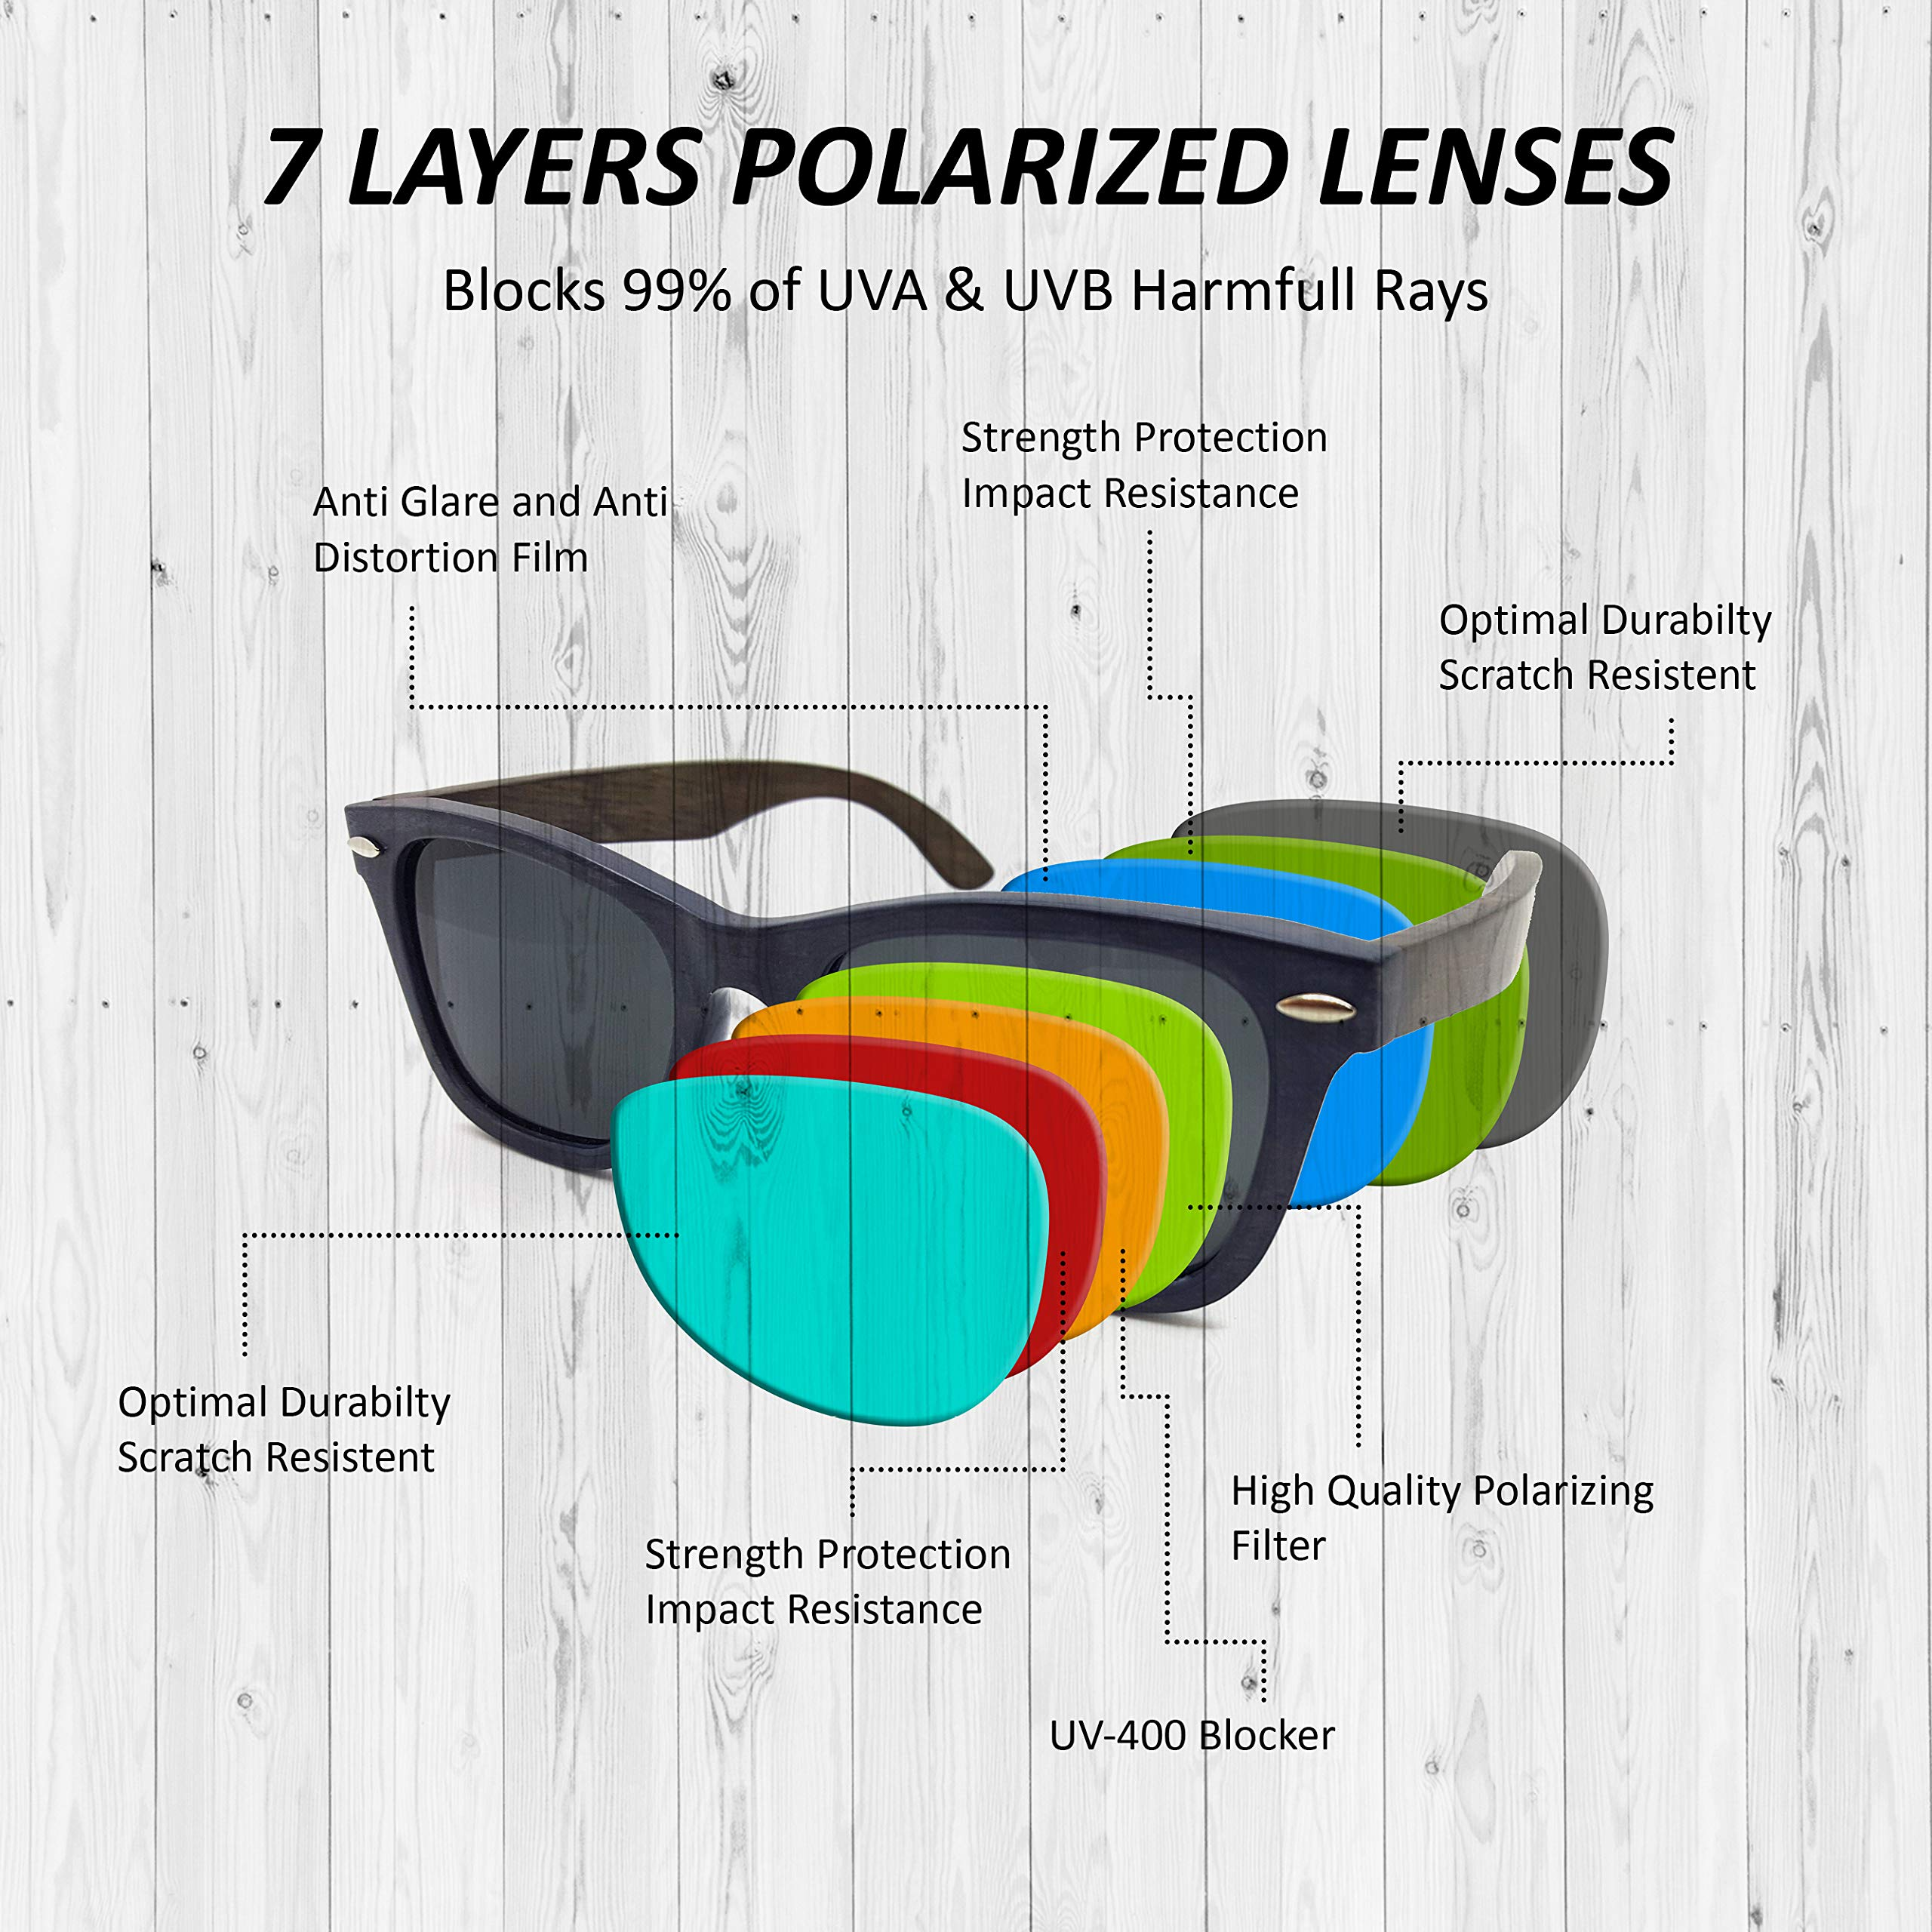 Real Wood Sunglasses Wayfarer UV-400 Polarized Lenses Plus Cap in Gift box by WOODB (Image #6)